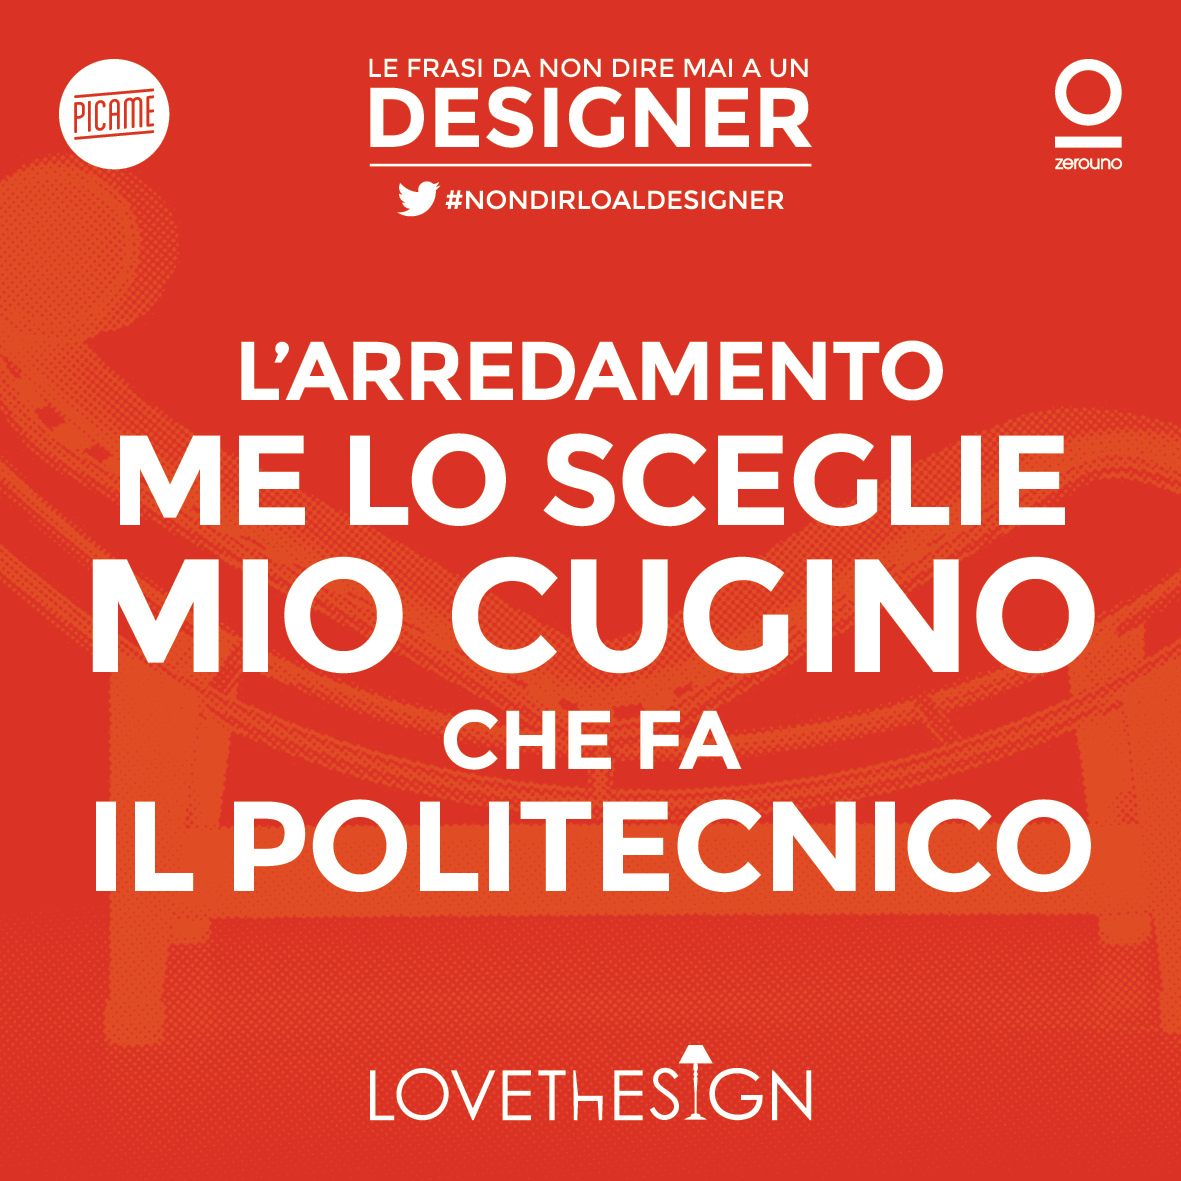 NonDirloalDesigner-Picame-Lovethesign-6